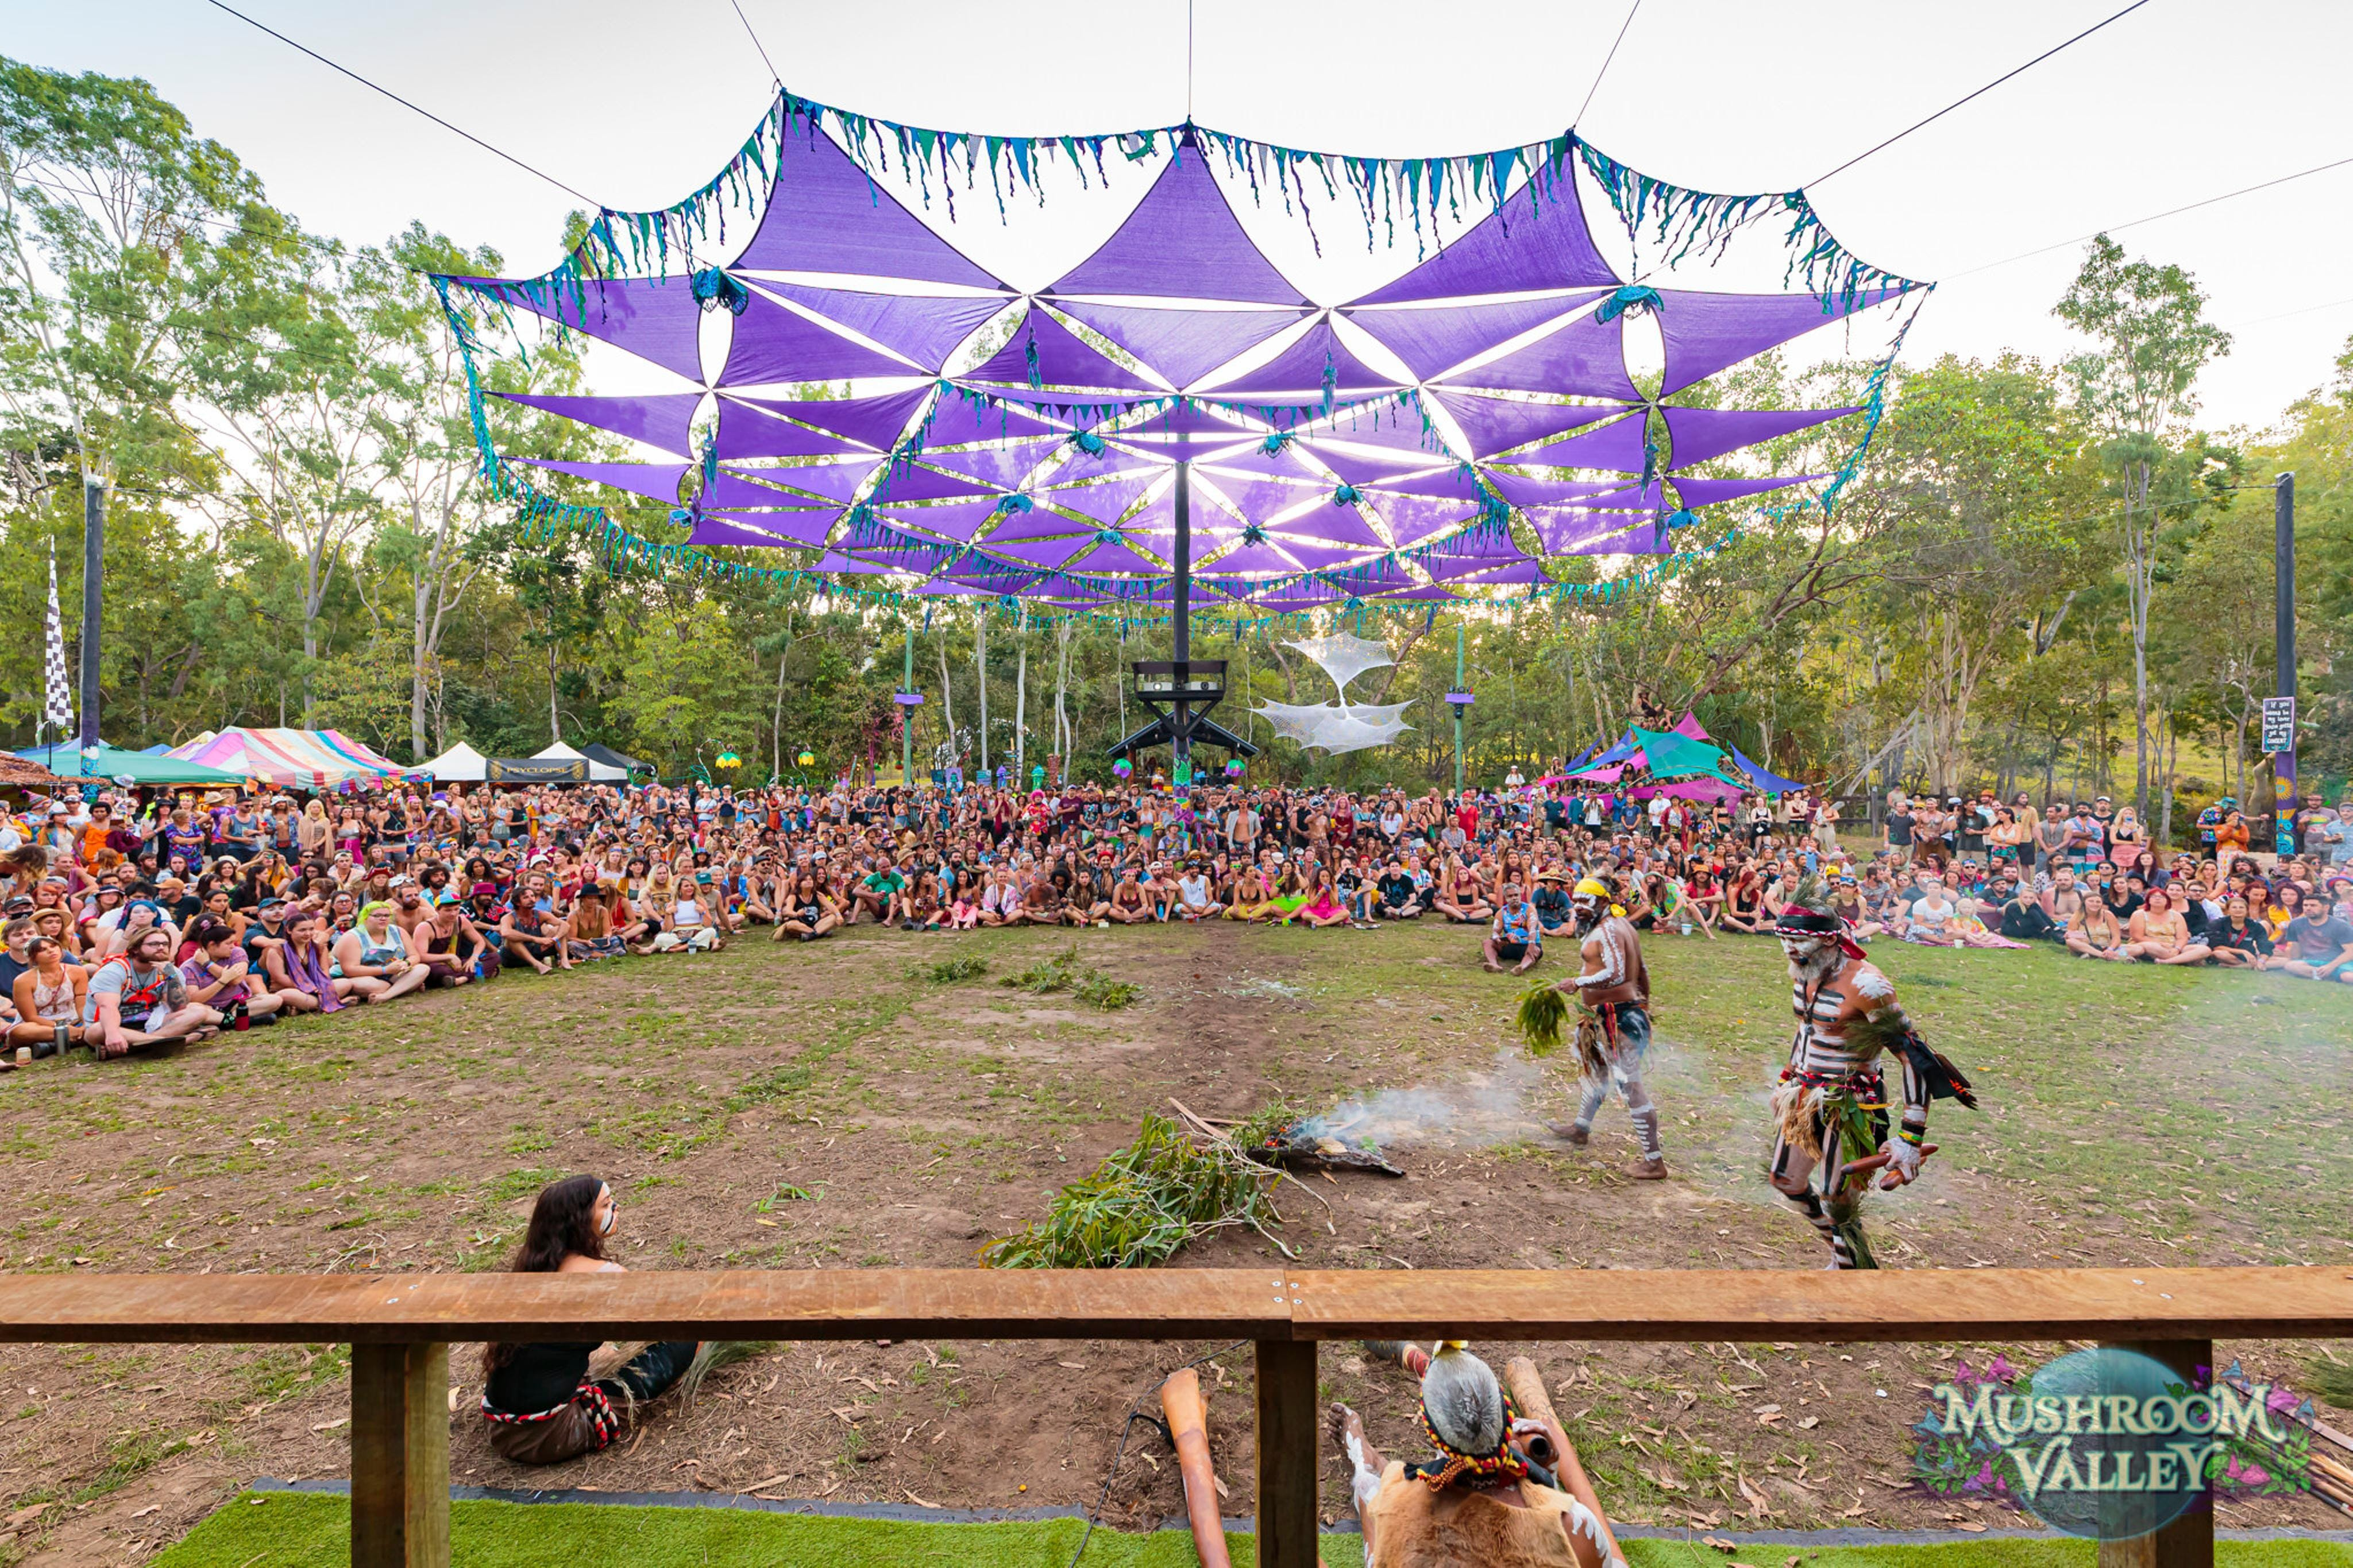 Mushroom Valley Festival - QLD Tourism